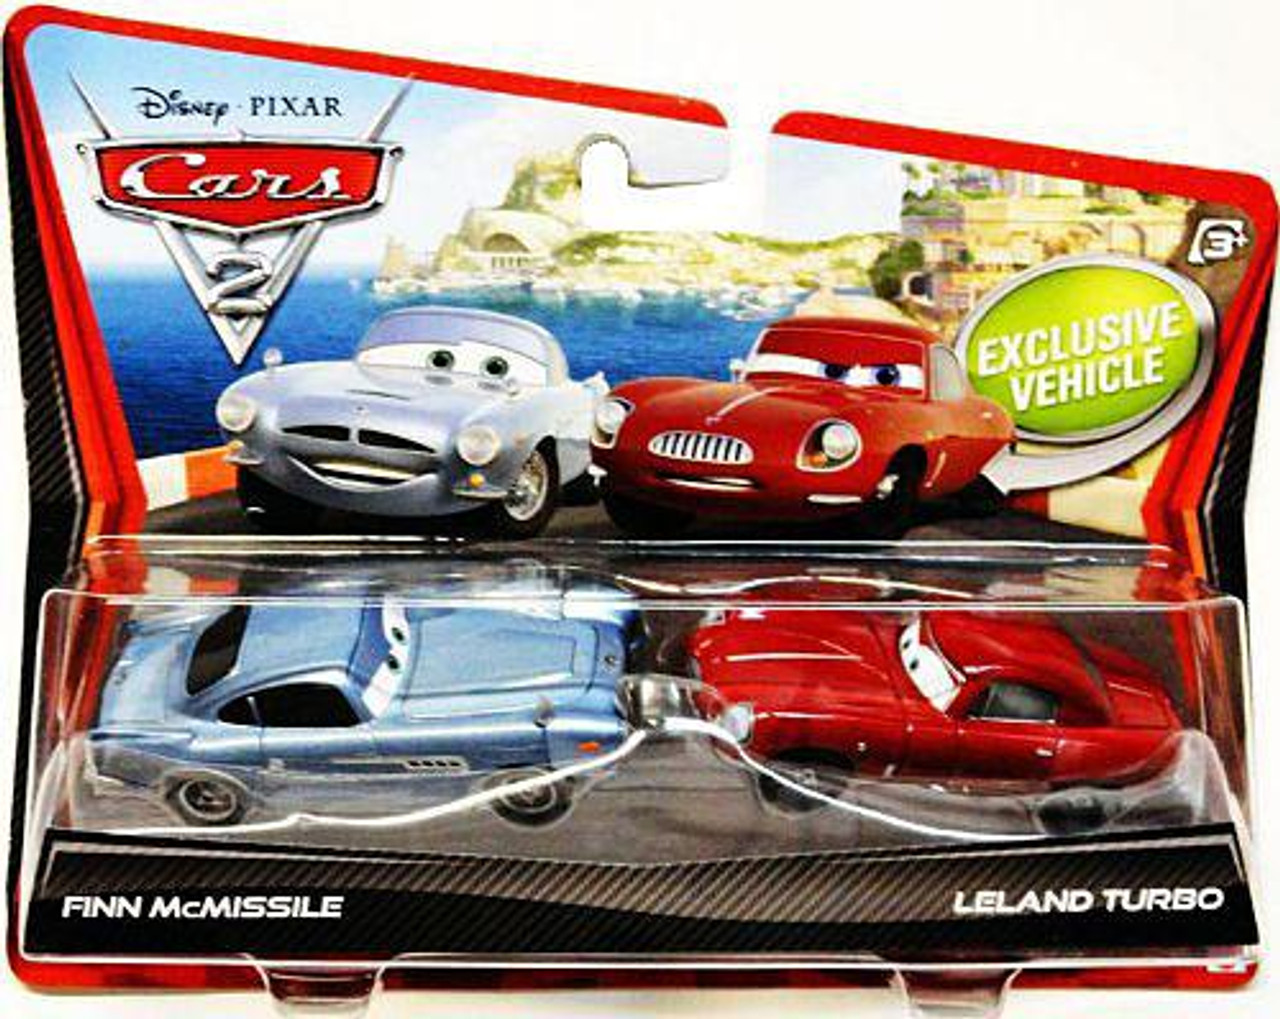 Disney Cars 2 4 Coloring Page - Free Coloring Pages Online | 1019x1280